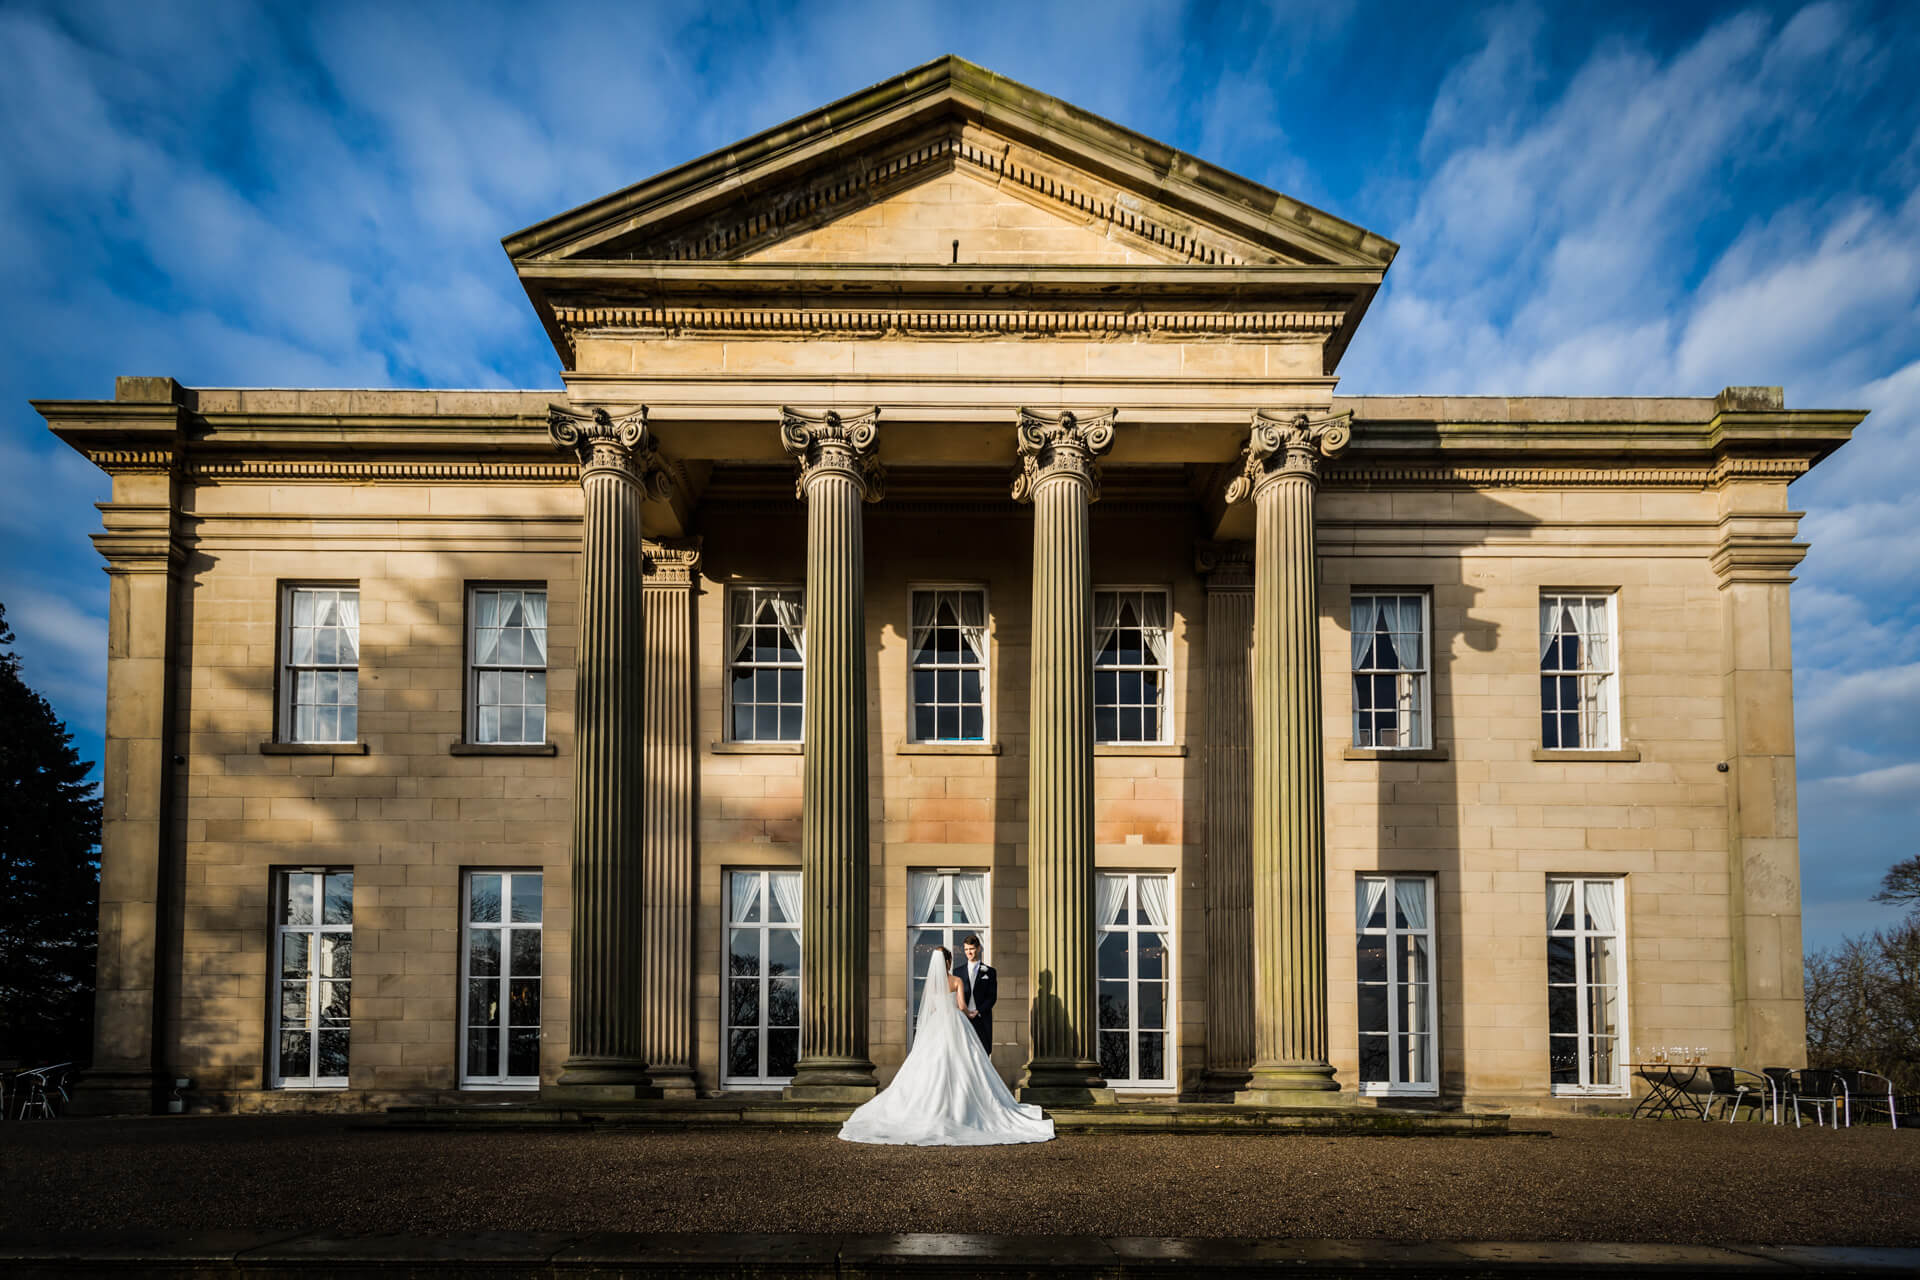 the bride and groom in front of The Mansion wedding venue in Leeds